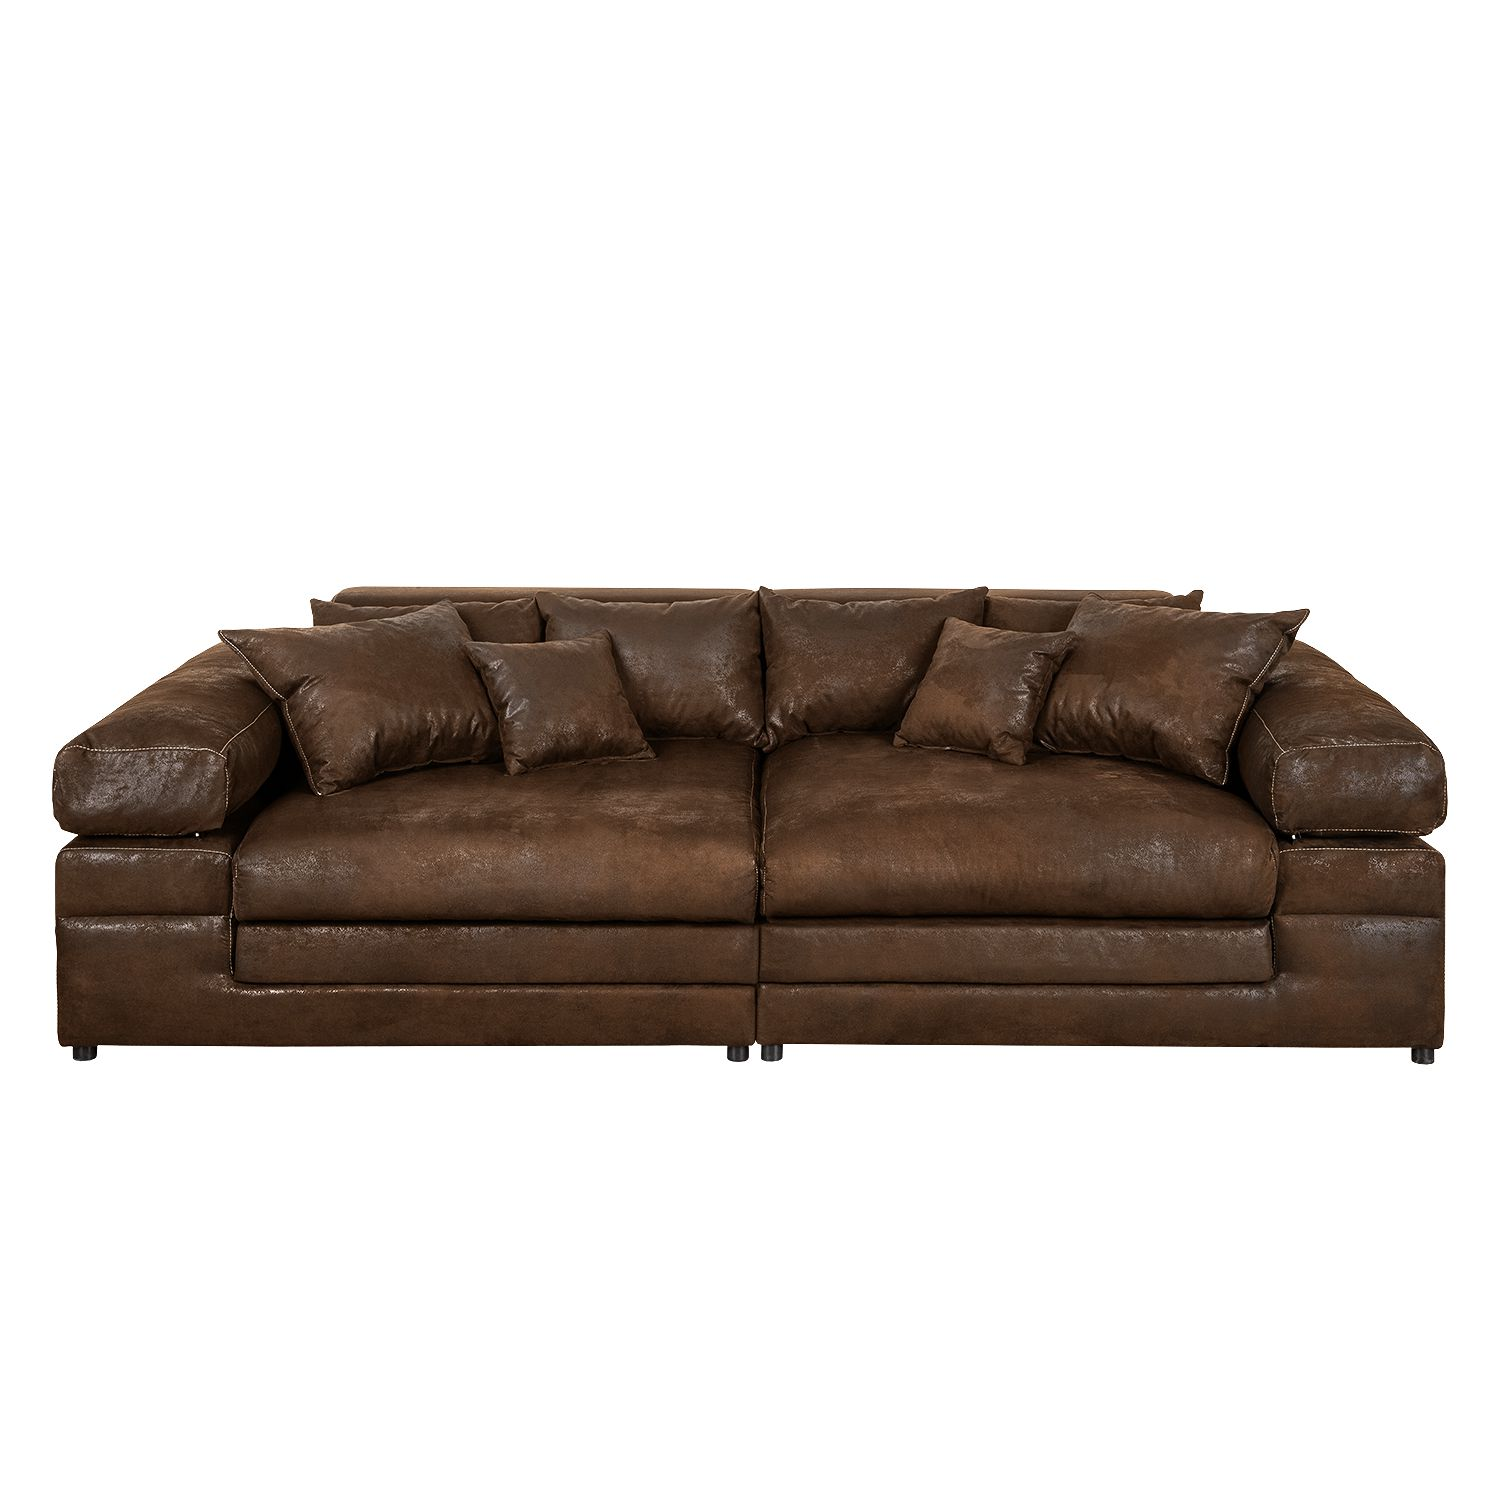 Verschiedene Couch Leder Braun Ideen Von Big Sofa Full Size Of With